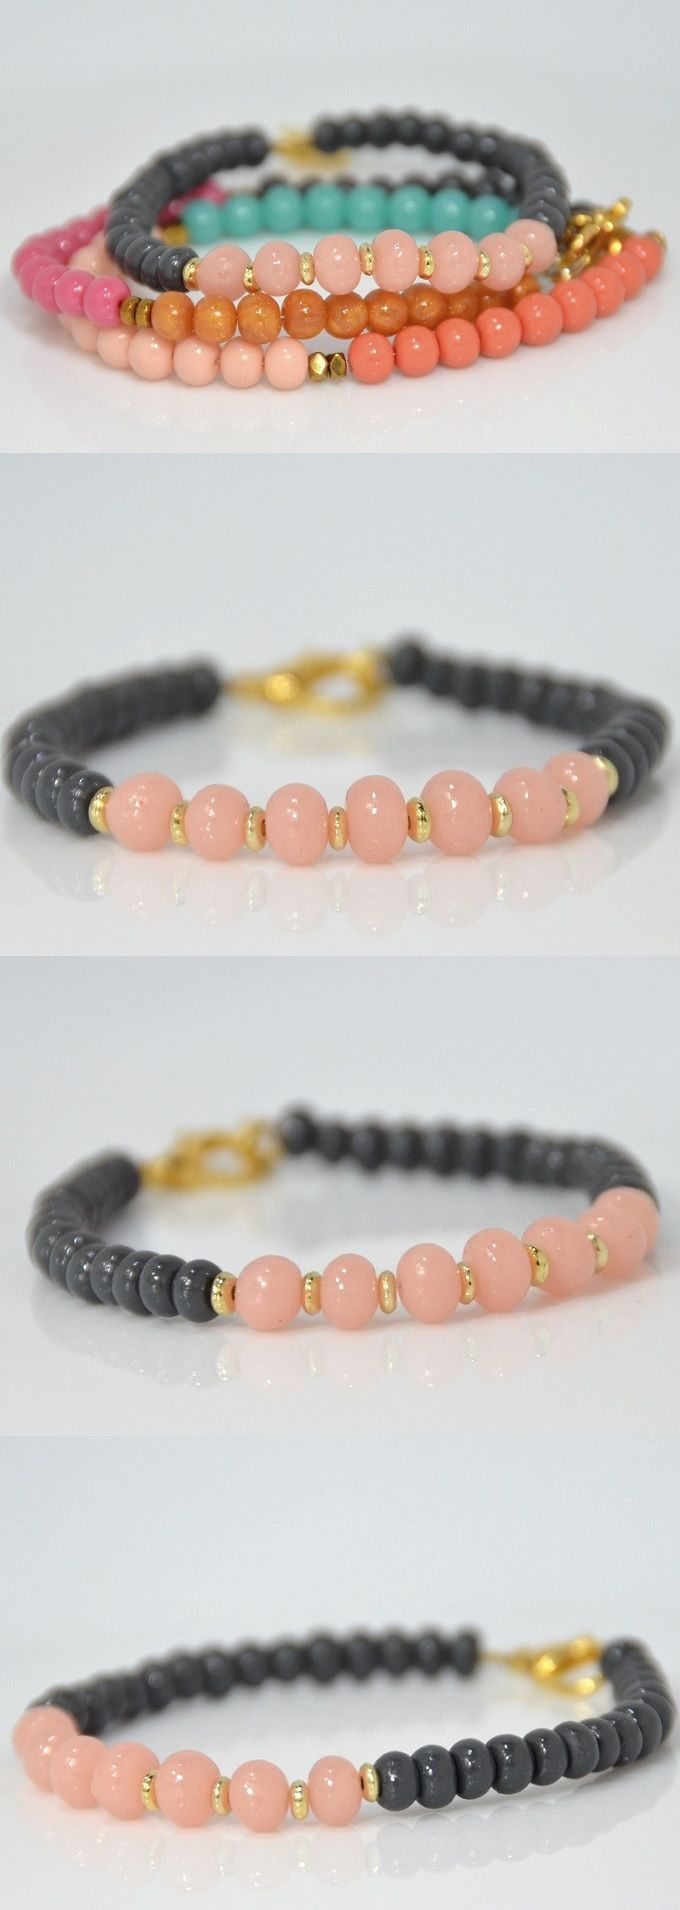 Stackable bracelet with handmade beads. Cute gray and blush colors. will look amazing for bridesmaids gifts.